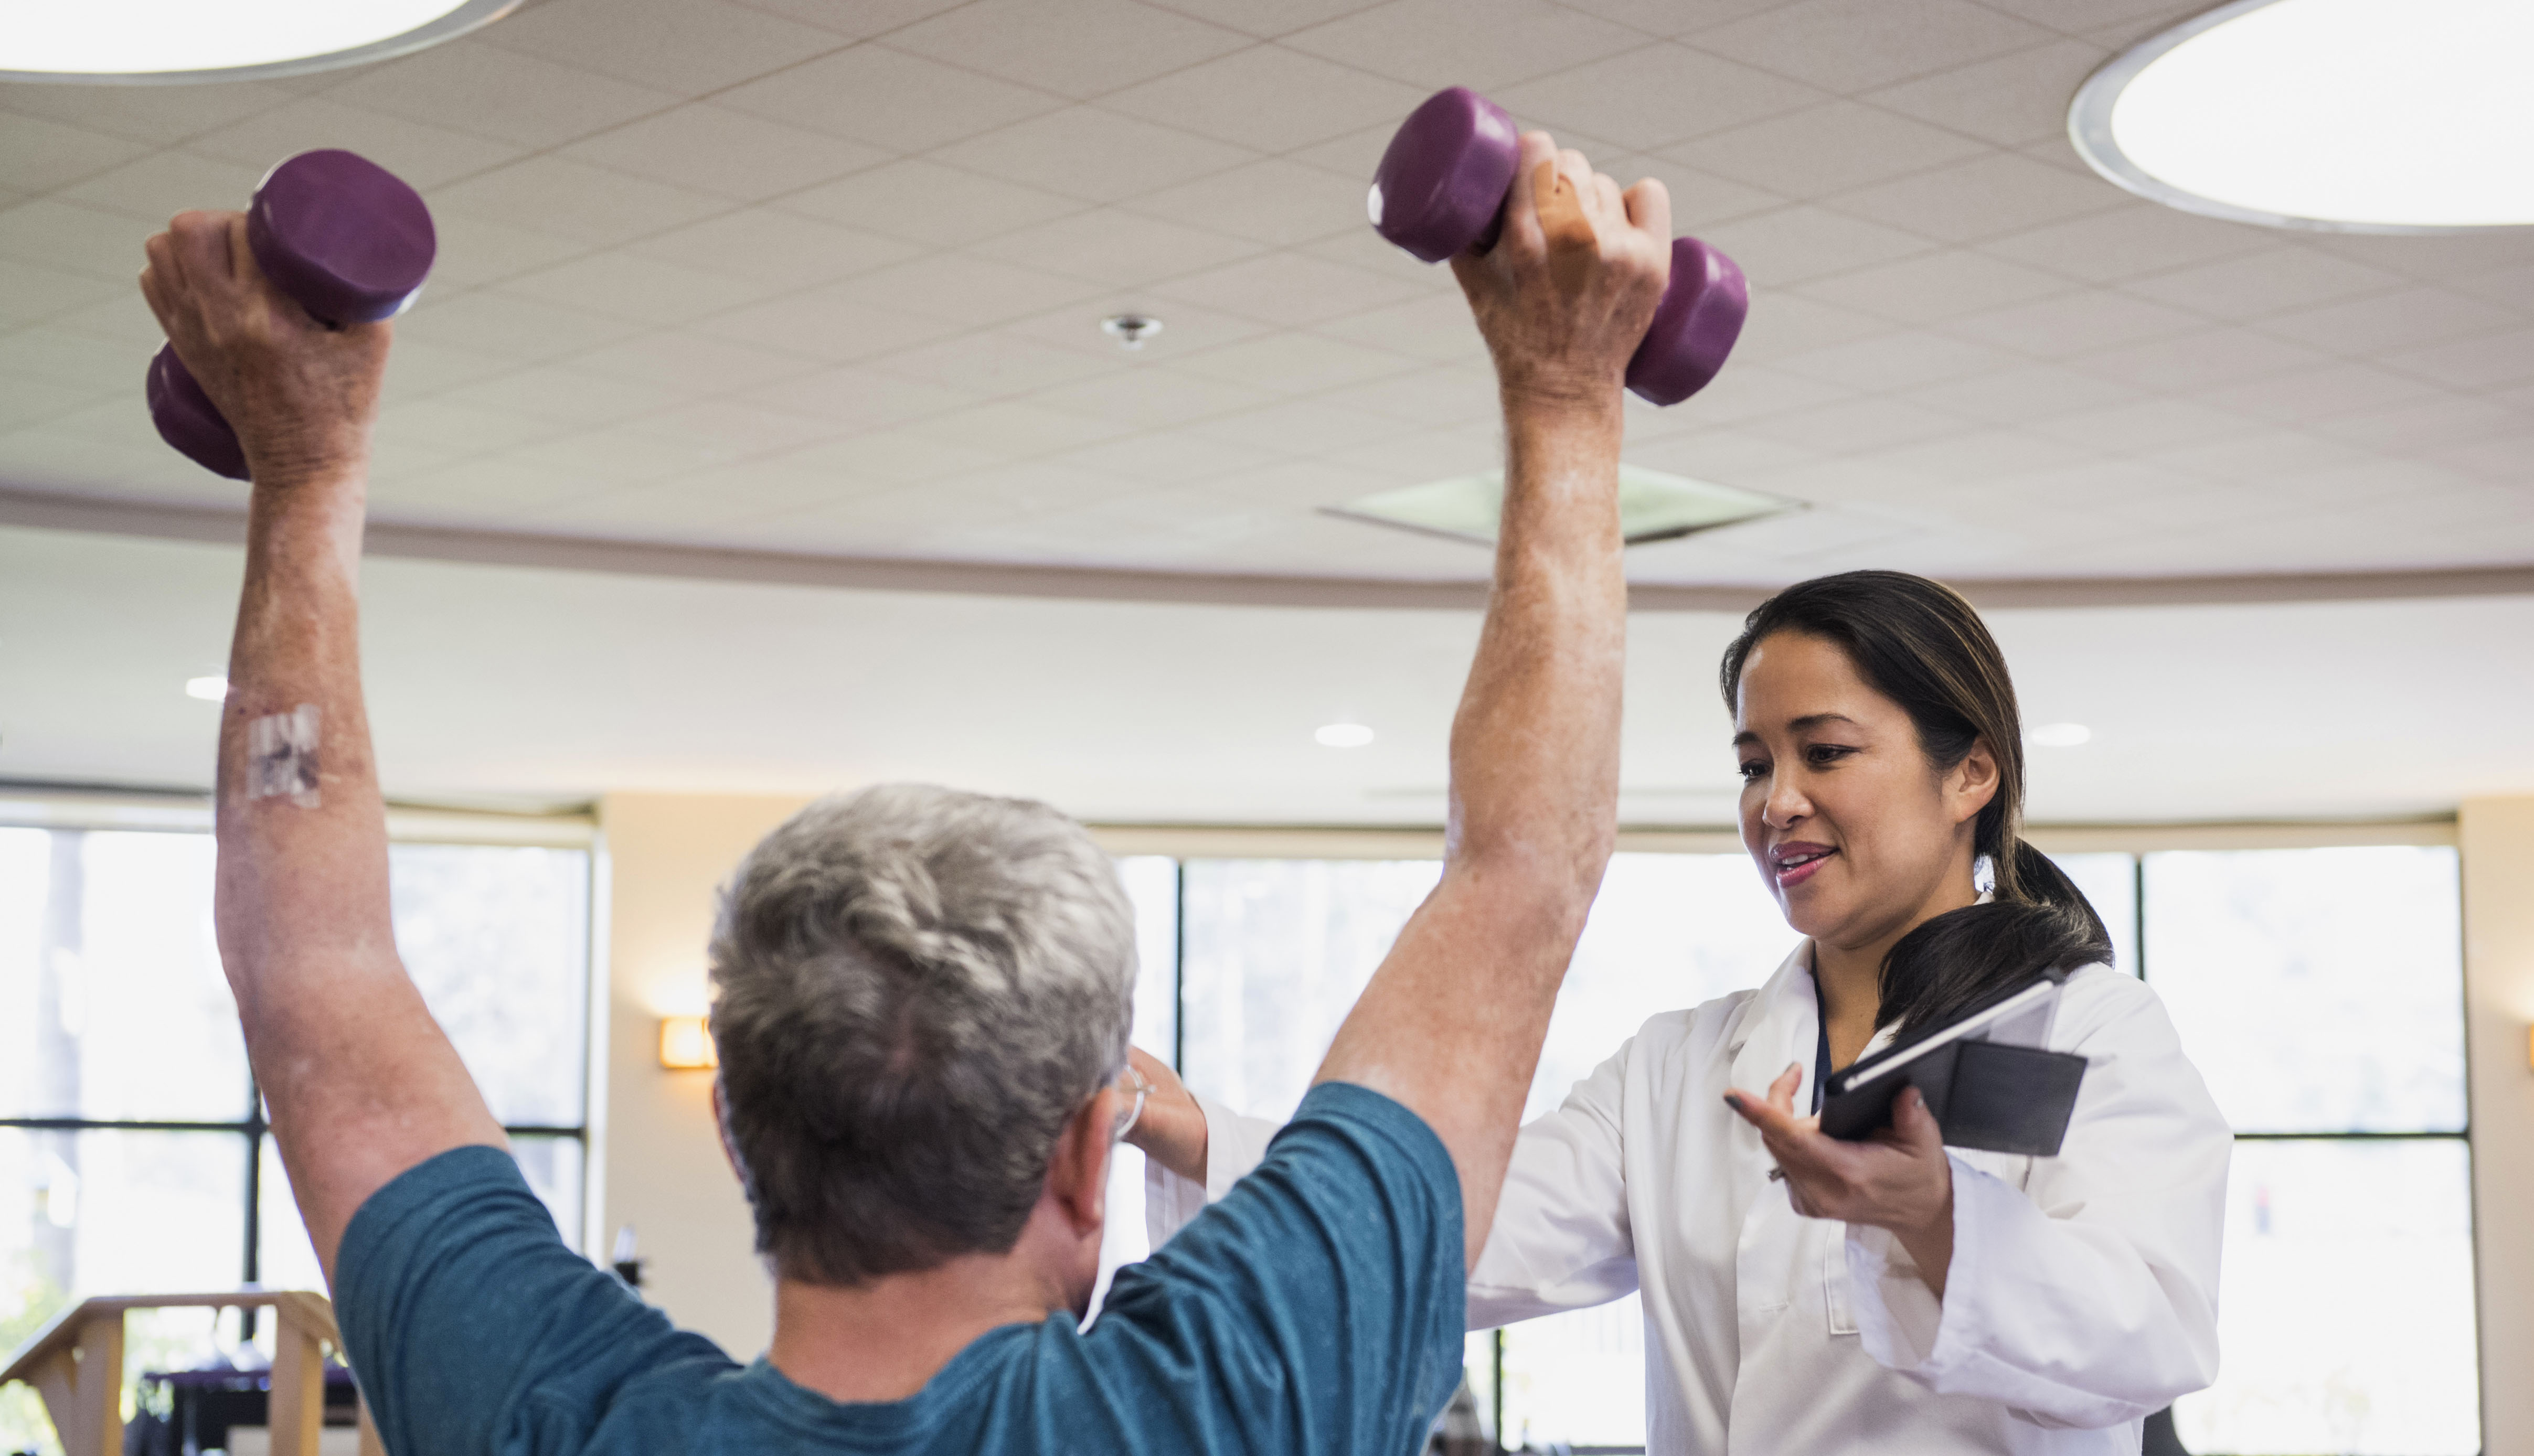 physical therapist helping patient lifting light weights